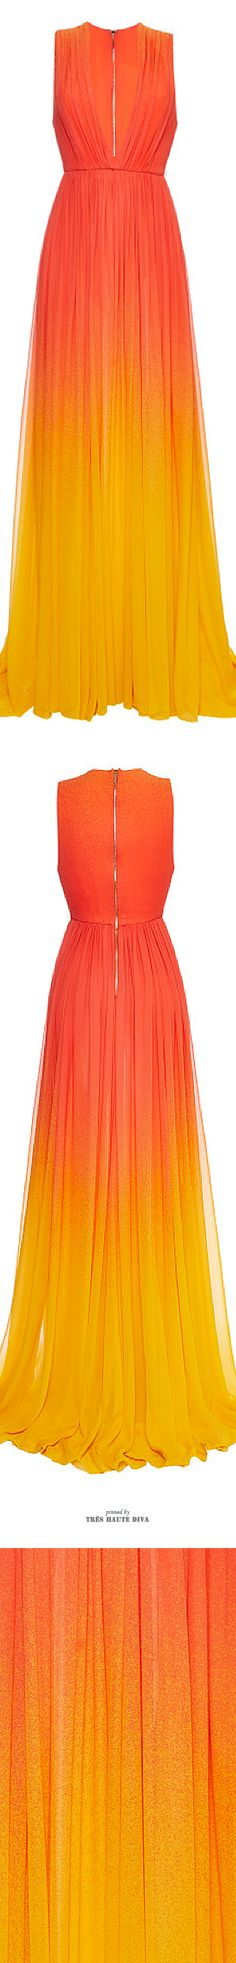 orange yellow ombre maxi dress plunge neckline #UNIQUE_WOMENS_FASHION